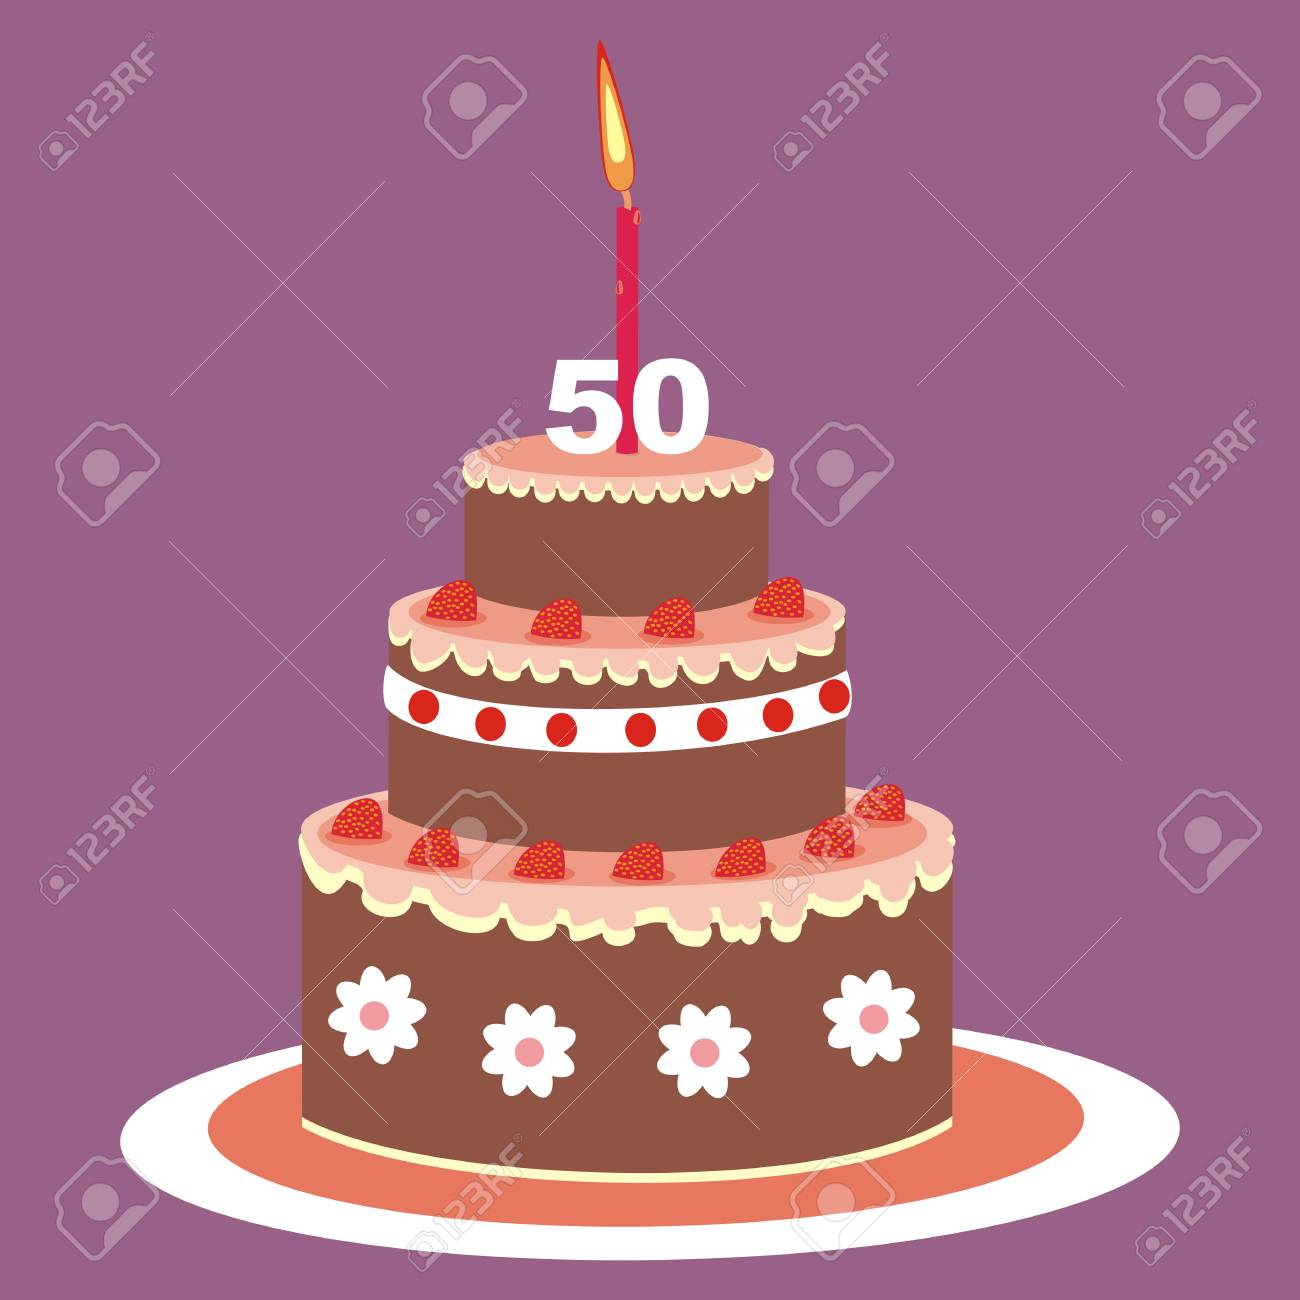 Birthday Cake 50 Years Vector Illustration Fruit With Candle On A Purple